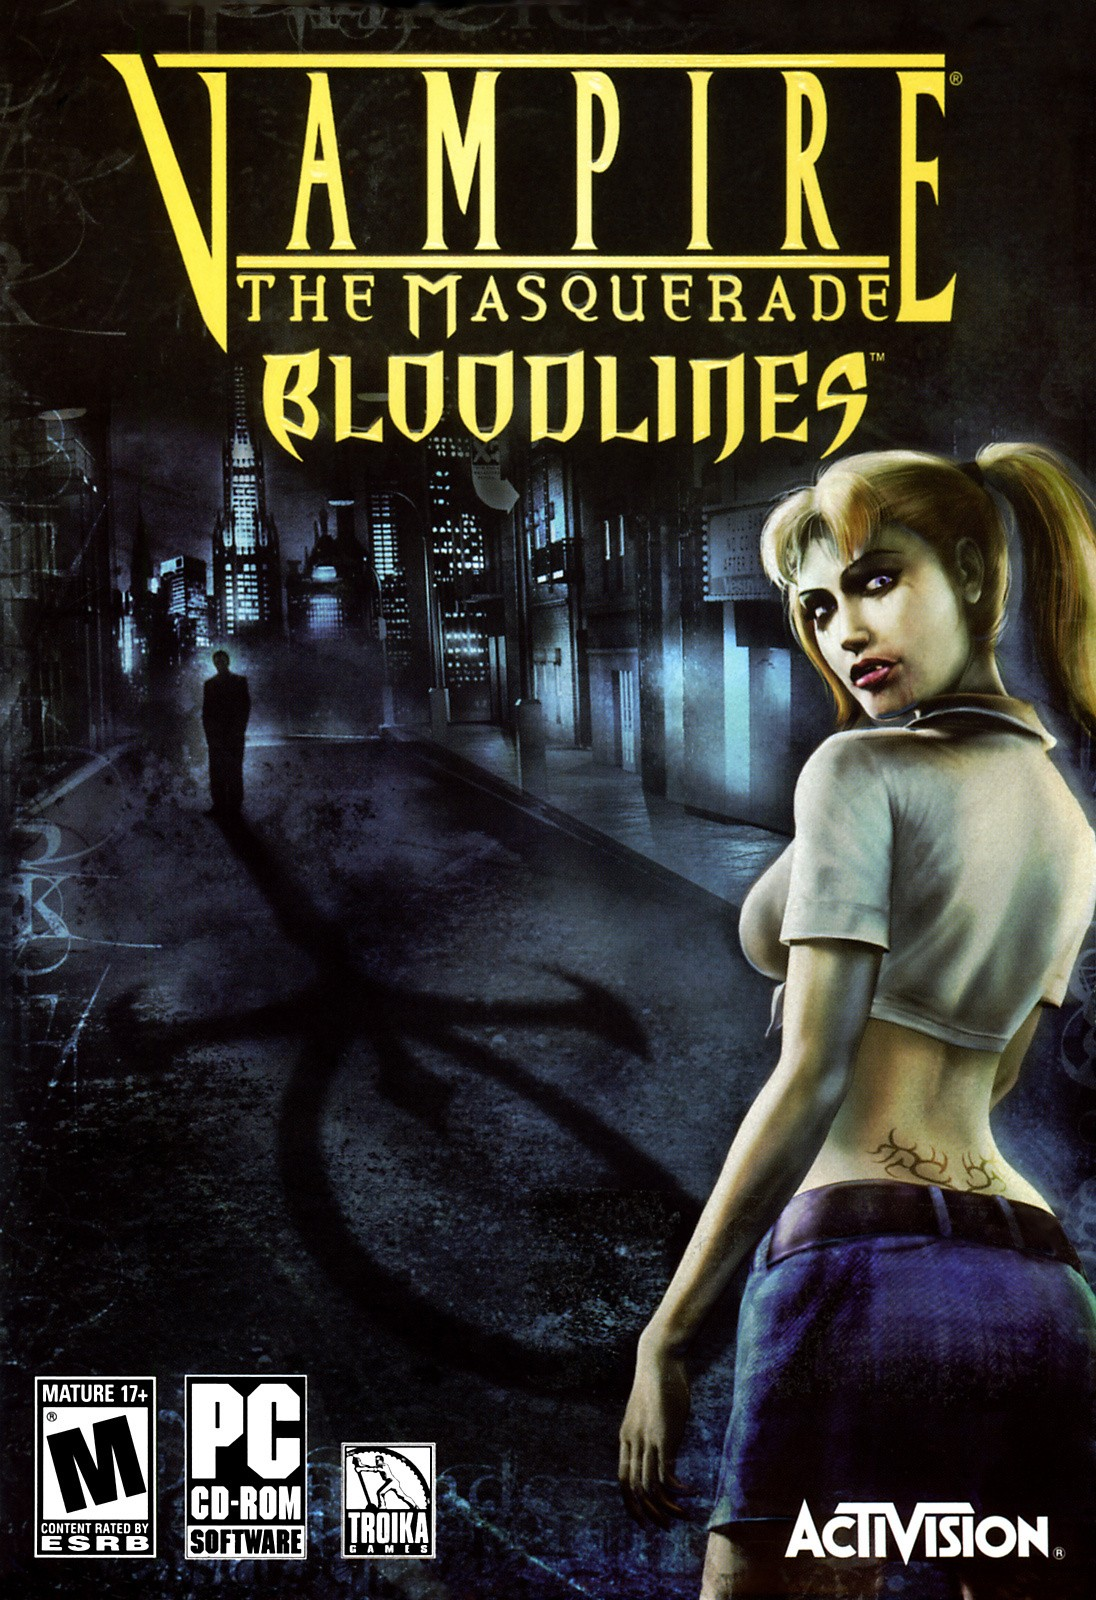 Vampire-The-Masquerade-Bloodlines-Box-Art